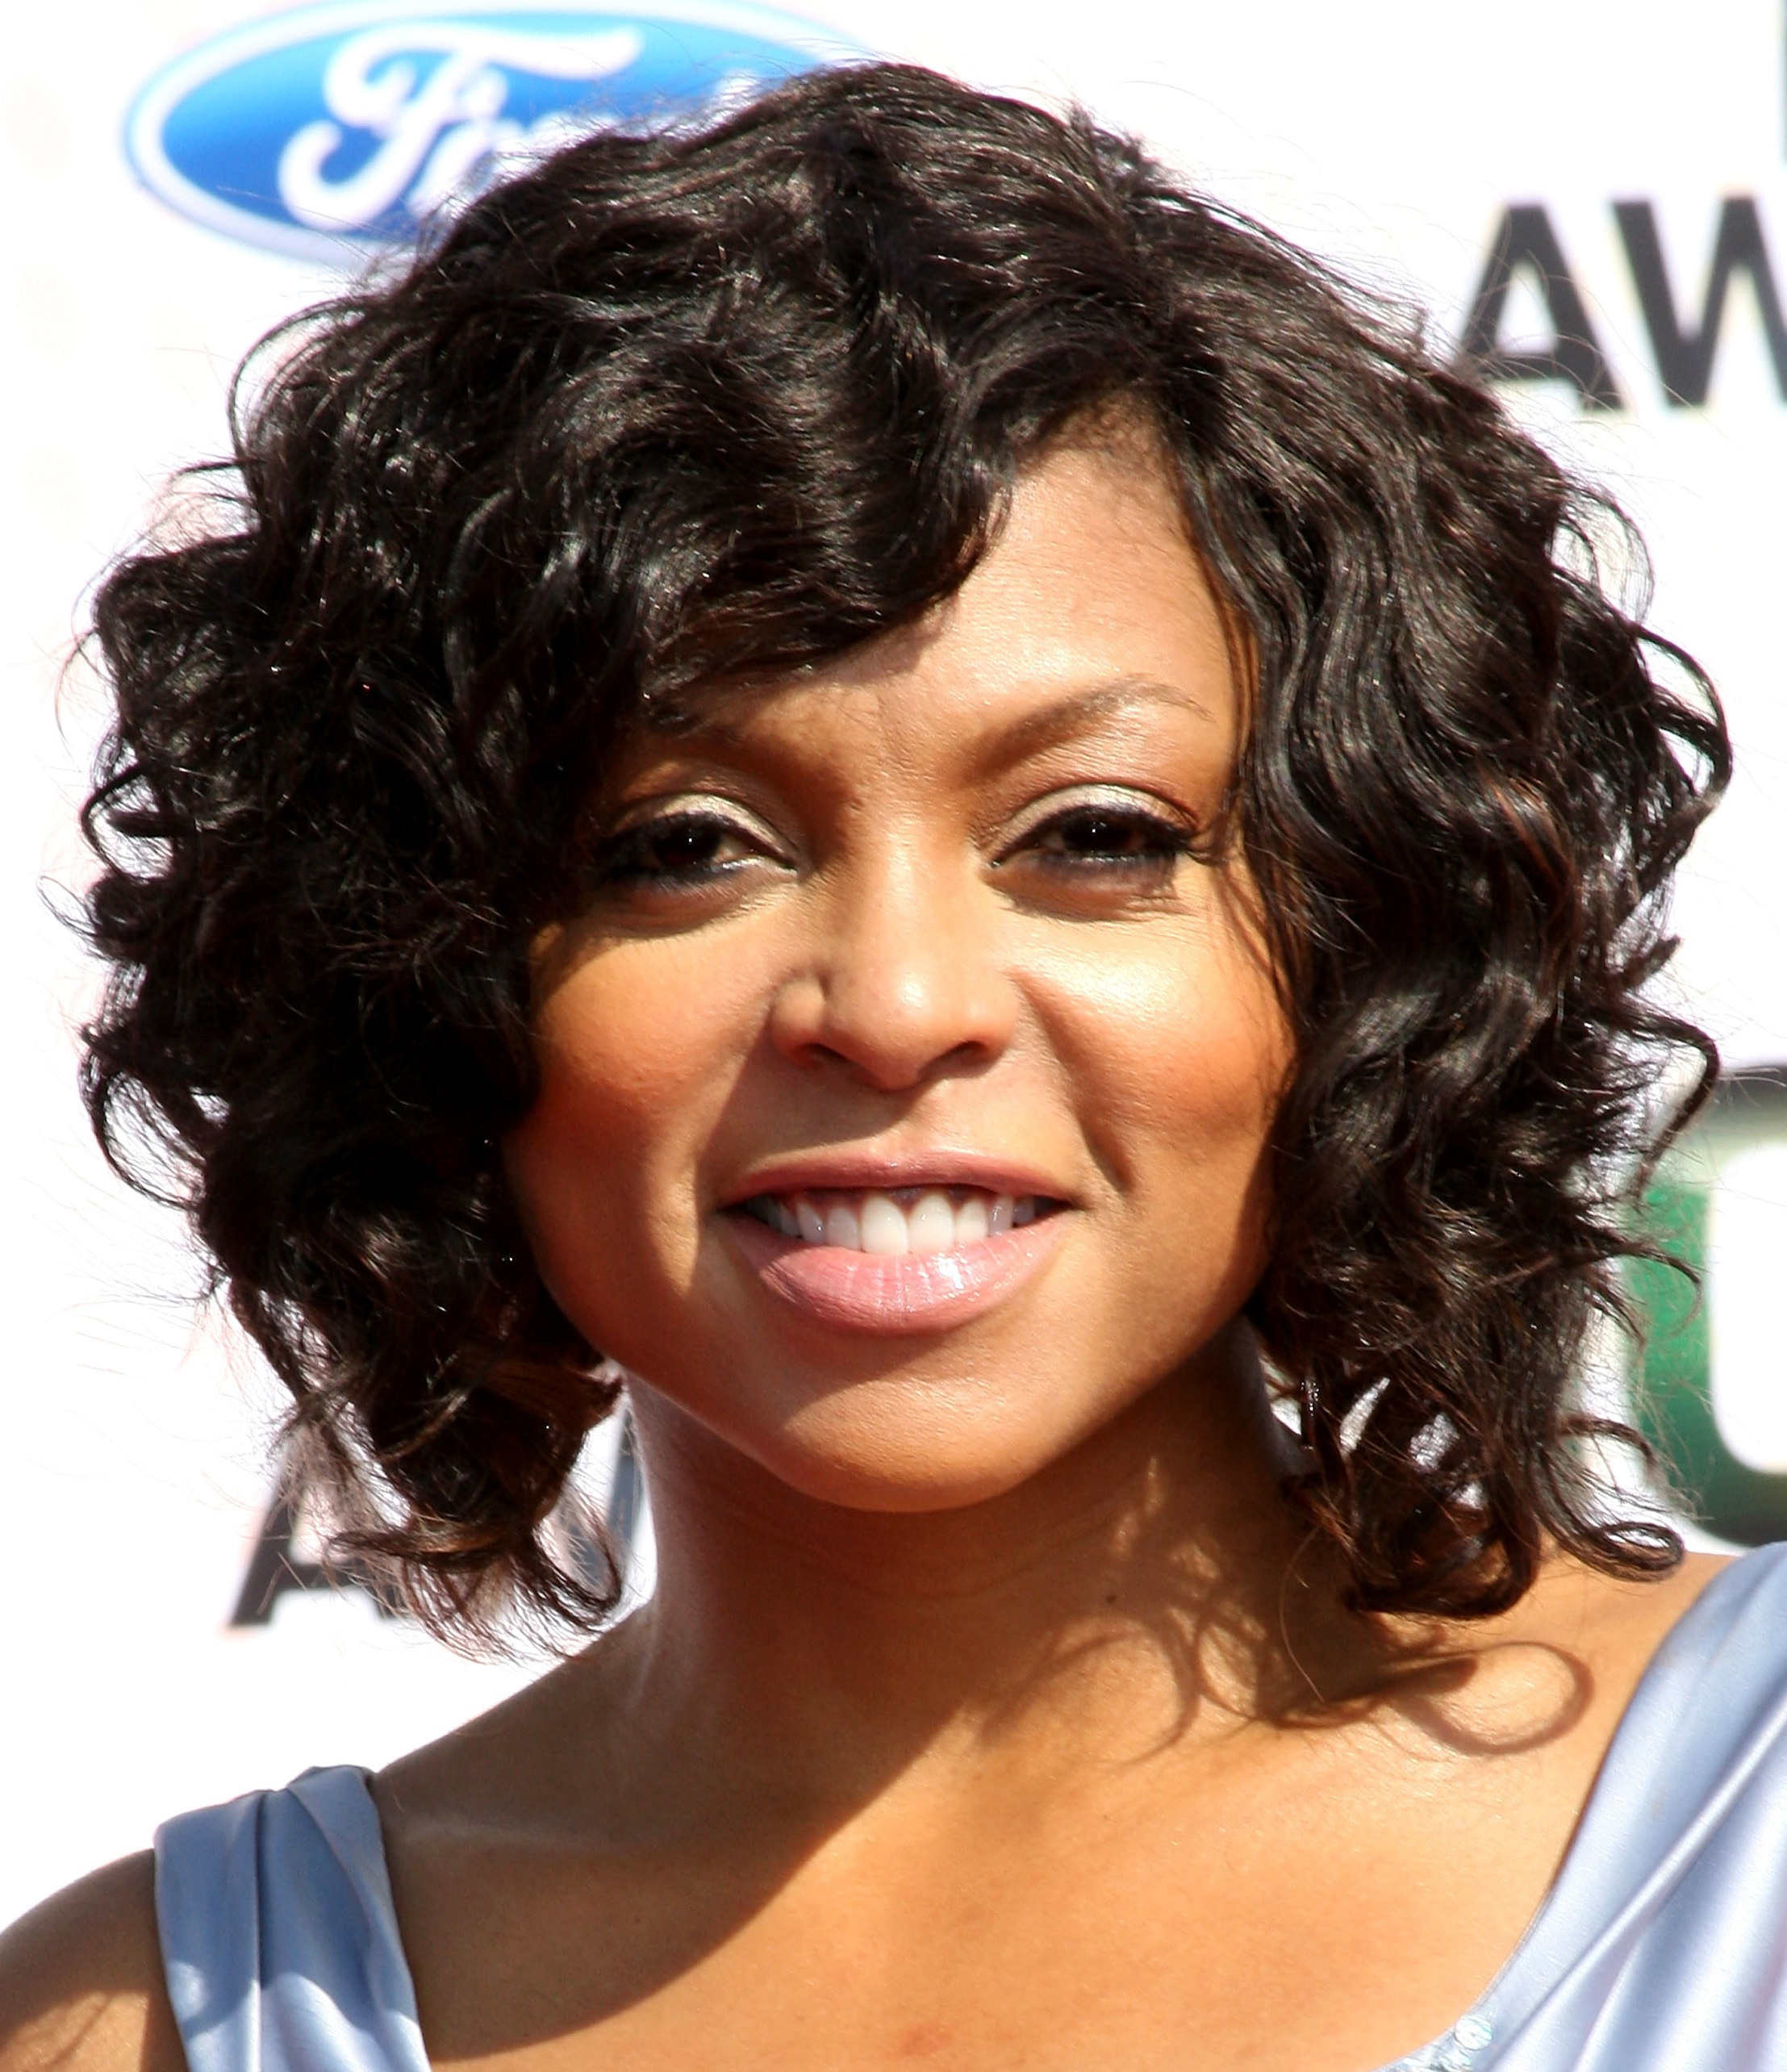 Wondrous Top 25 Short Curly Hairstyles For Black Women Hairstyle Inspiration Daily Dogsangcom